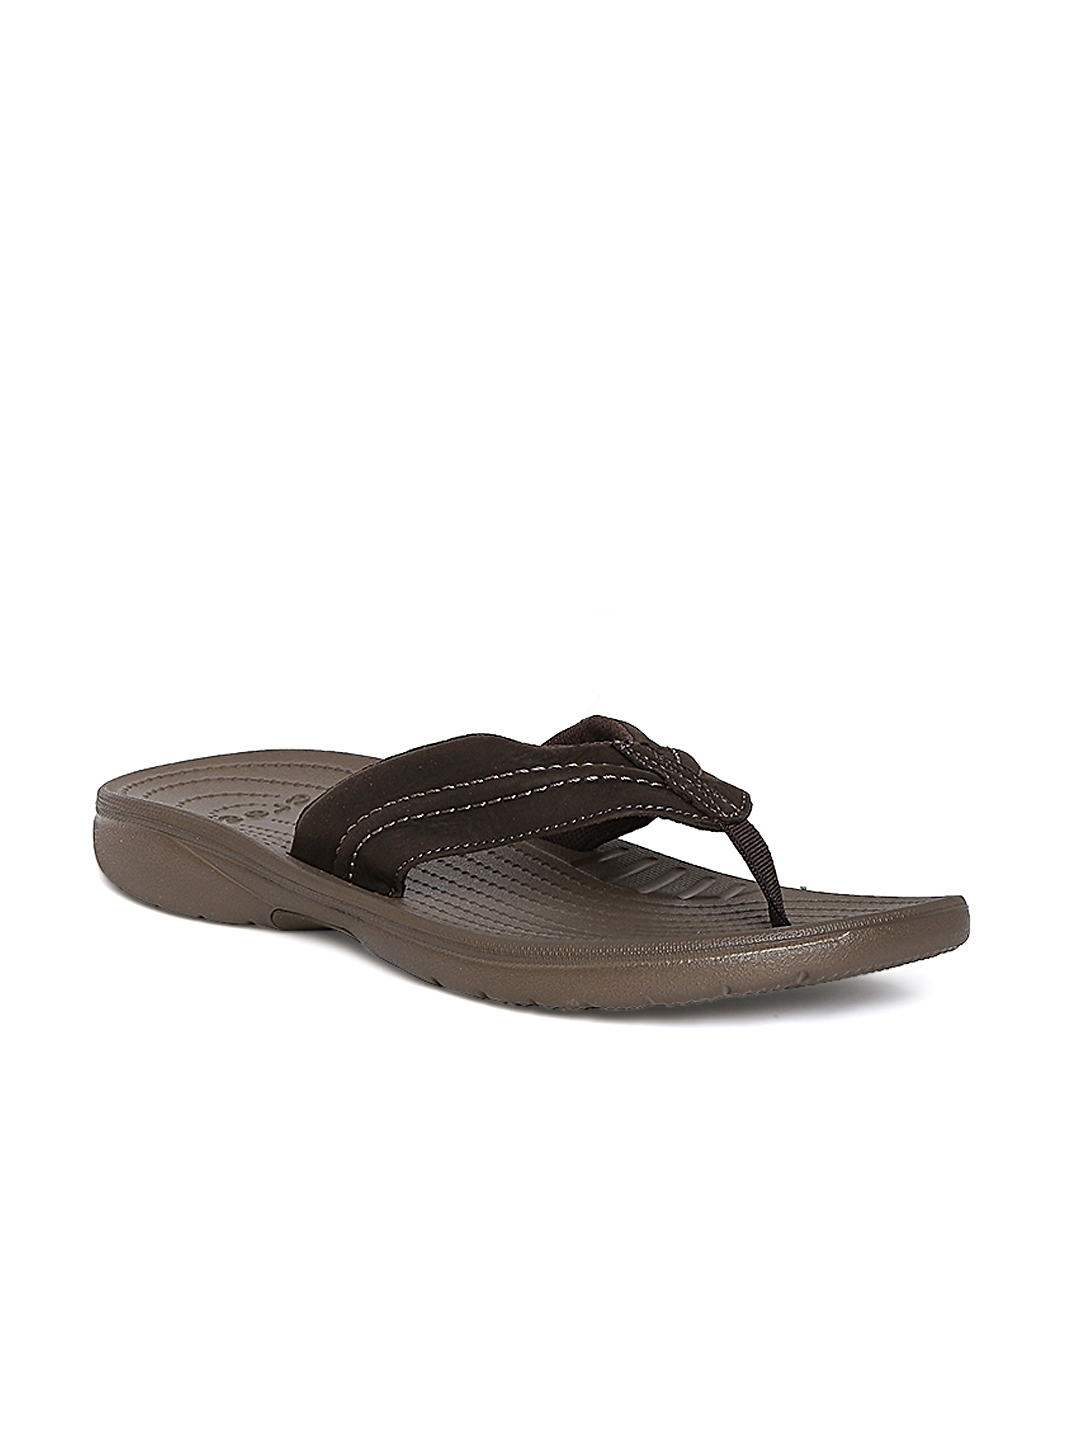 bc027d09858 Buy Crocs Men Brown Genuine Leather Flip Flops - Flip Flops for Men ...